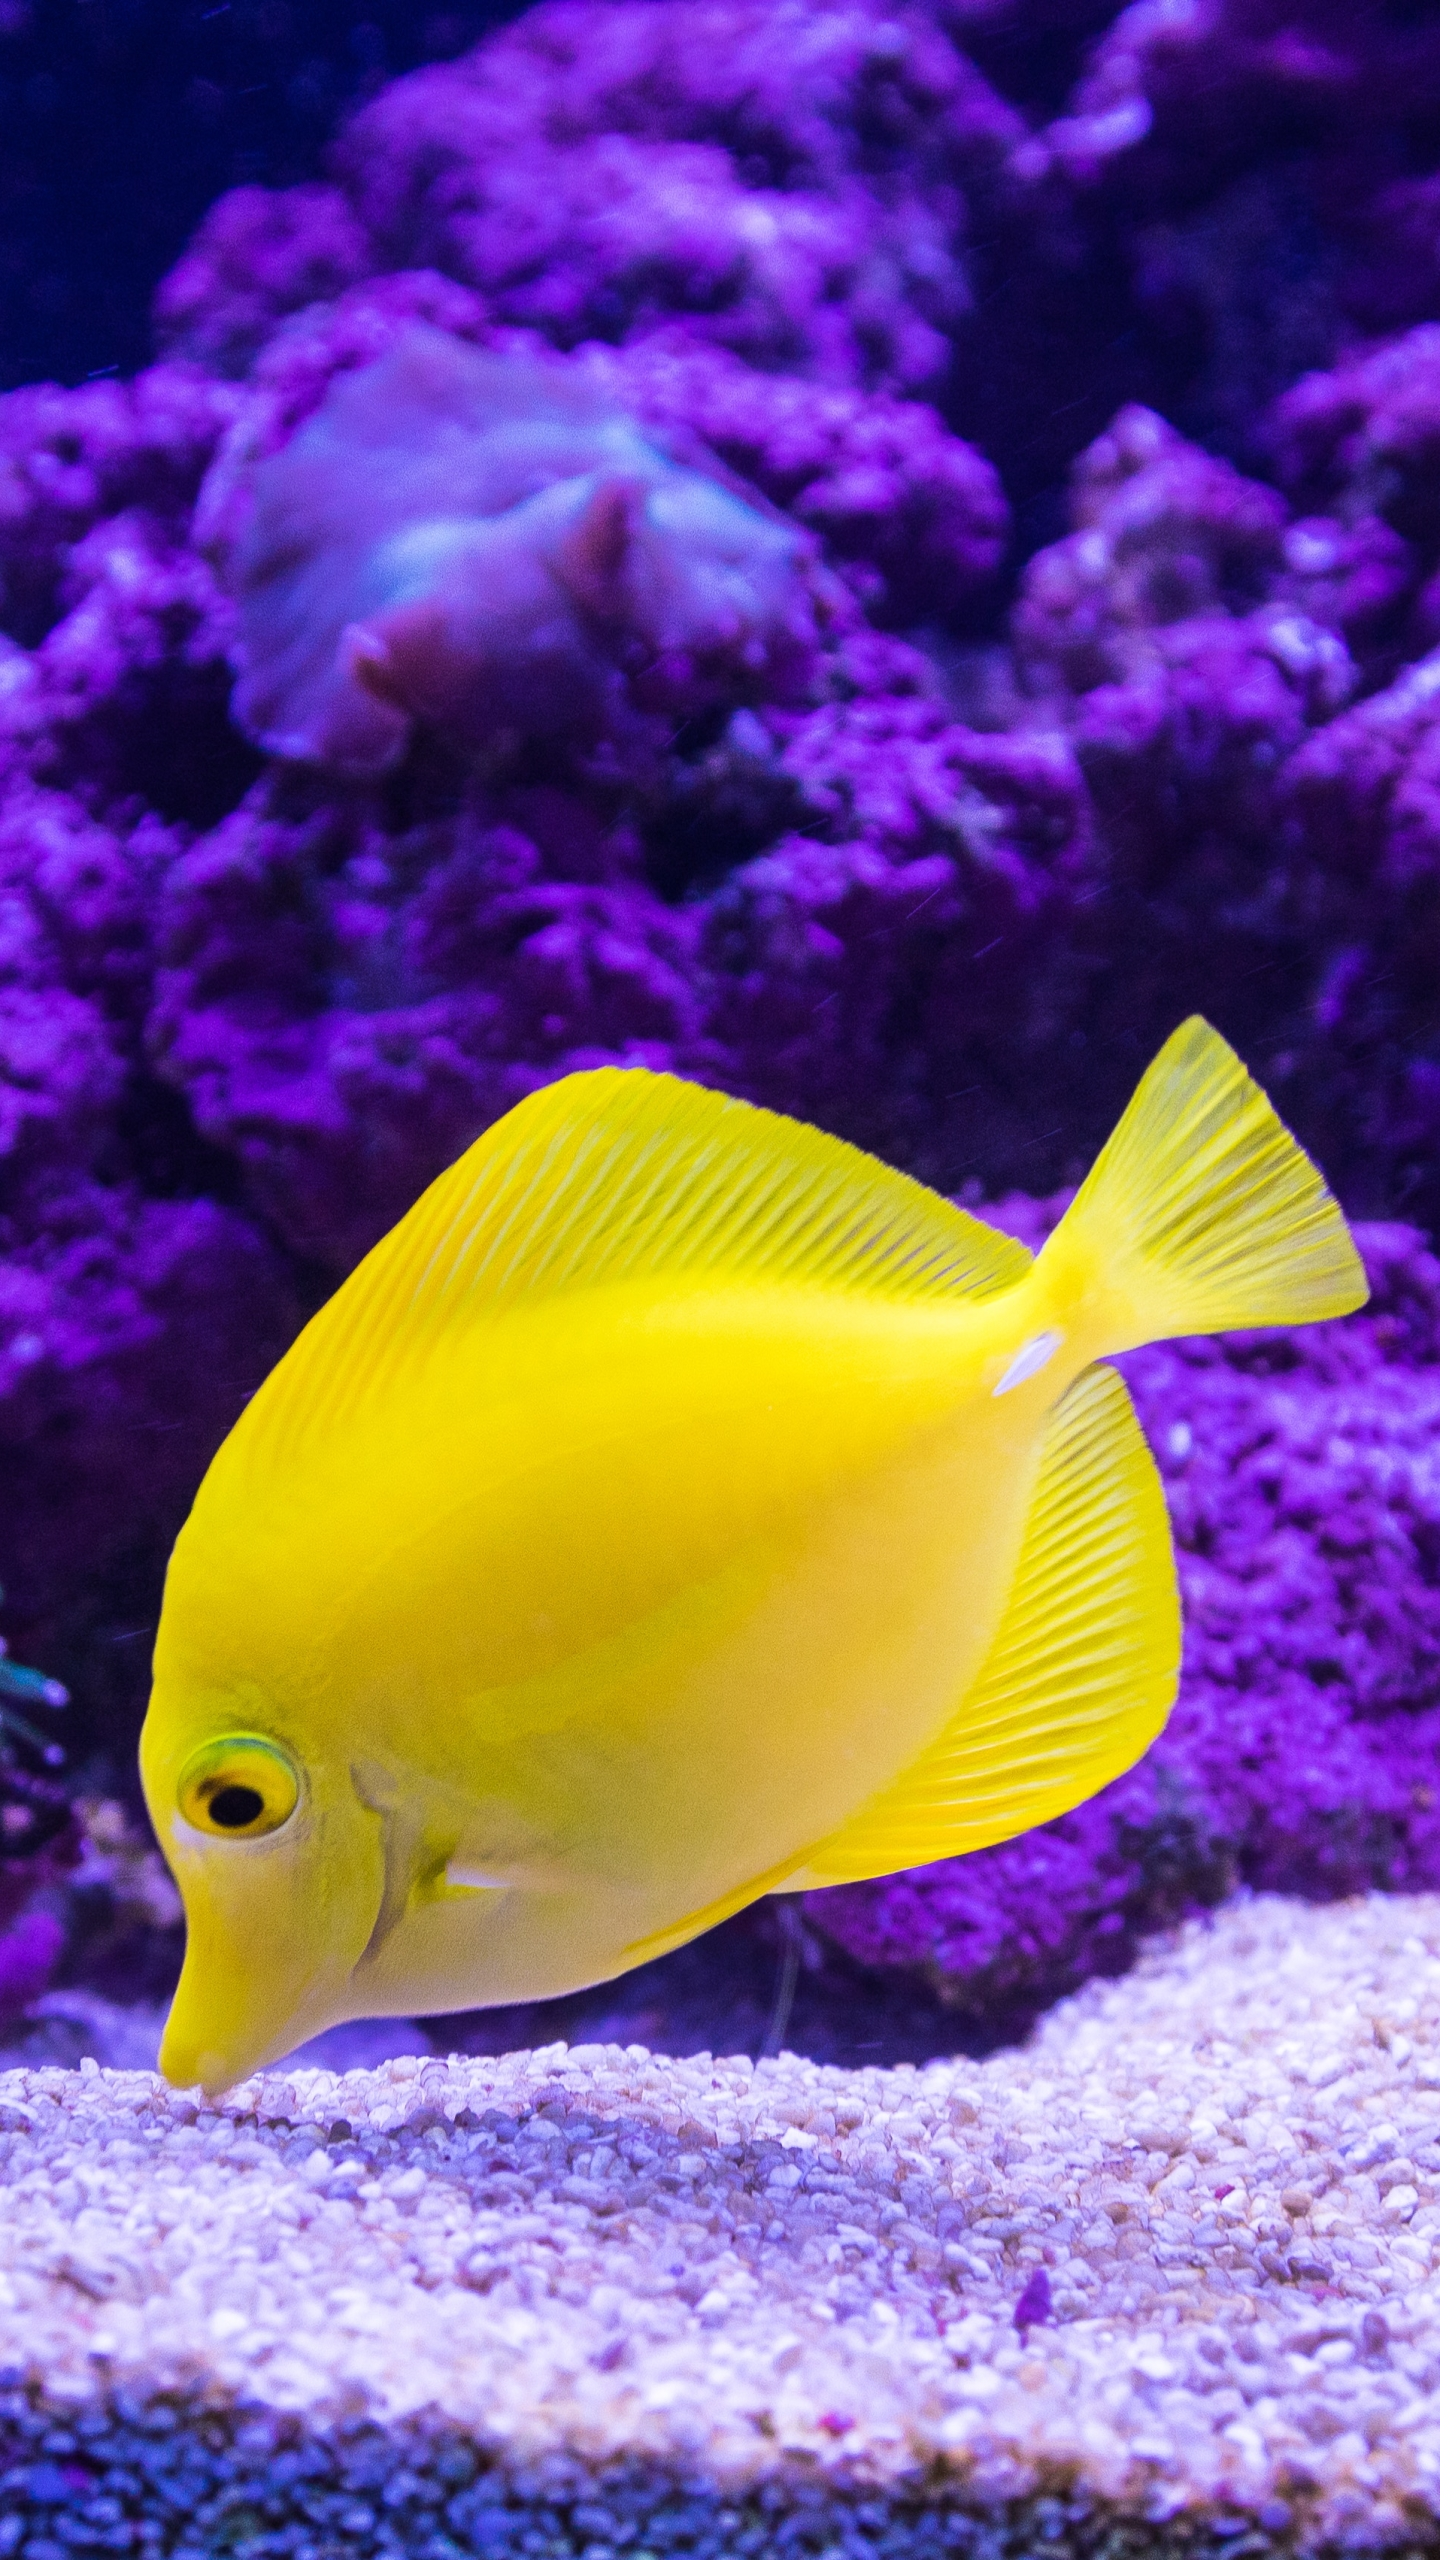 Animal Tropical Fish 1440x2560 Wallpaper Id 696833 Mobile Abyss